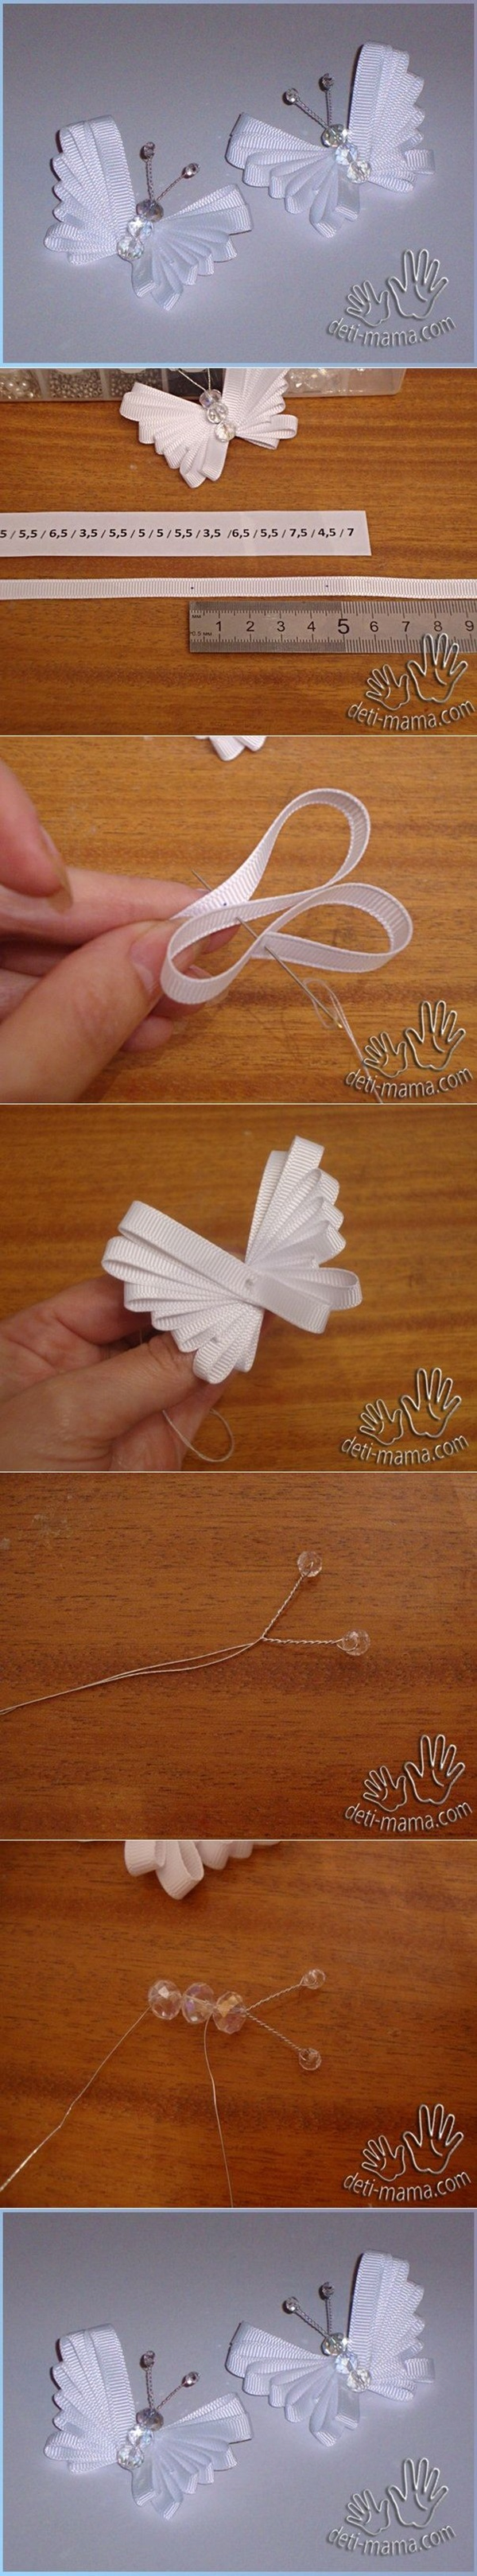 Different Ways to Use Ribbons 7